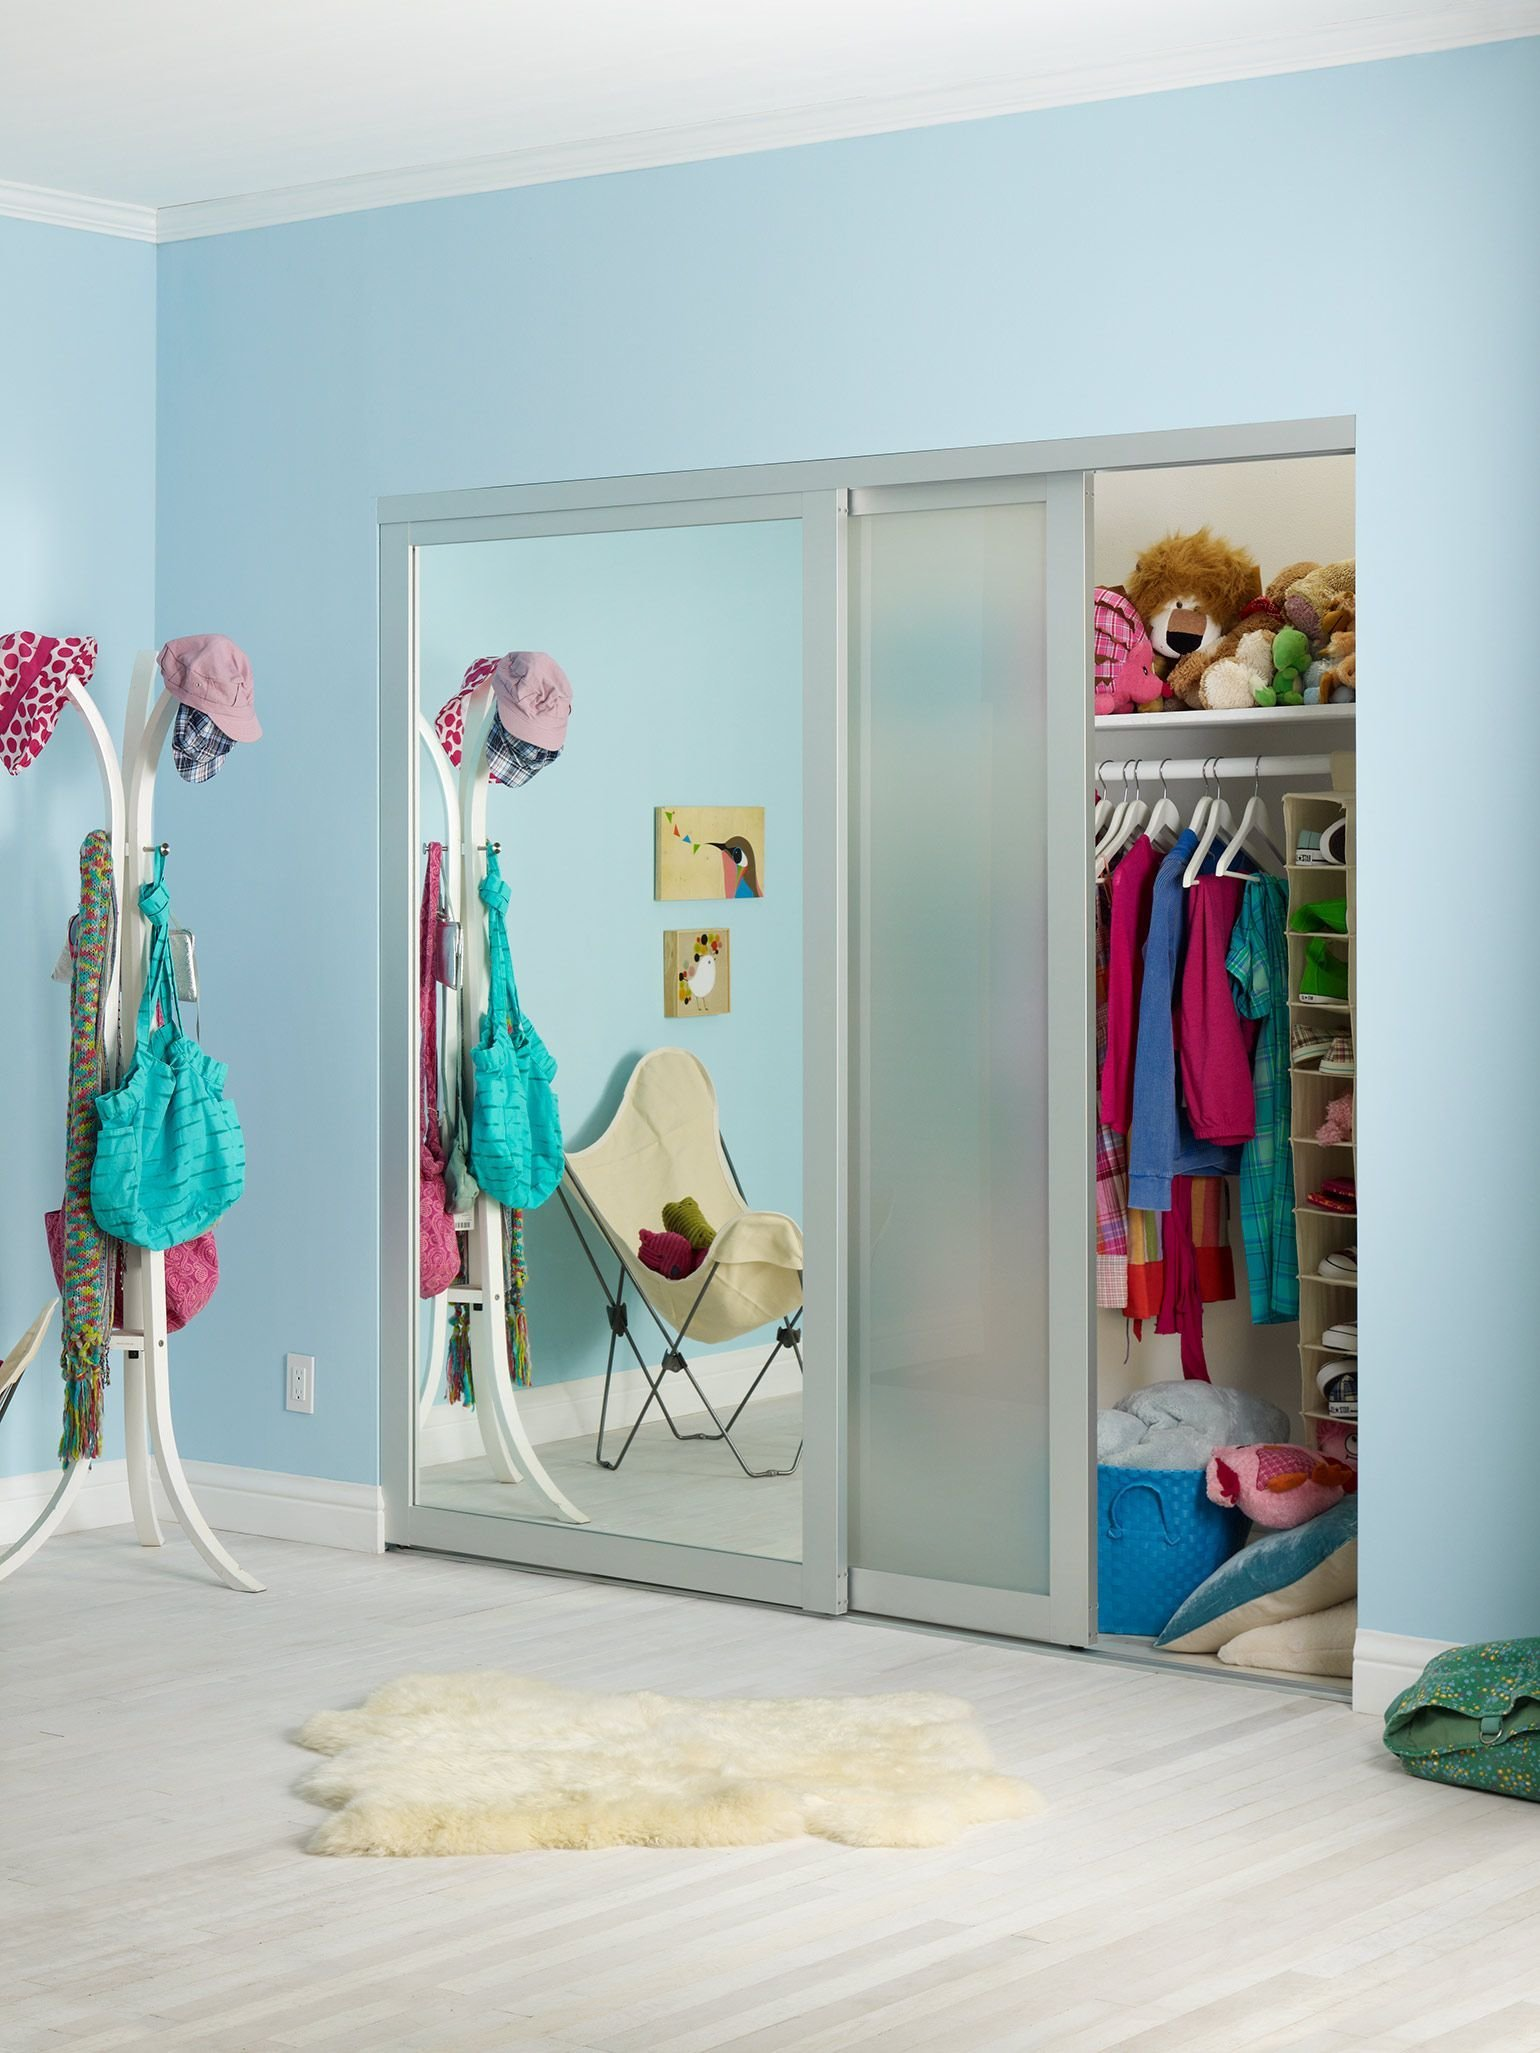 Best Closet One Half Mirrored Door The Other Is Frosted With Pictures